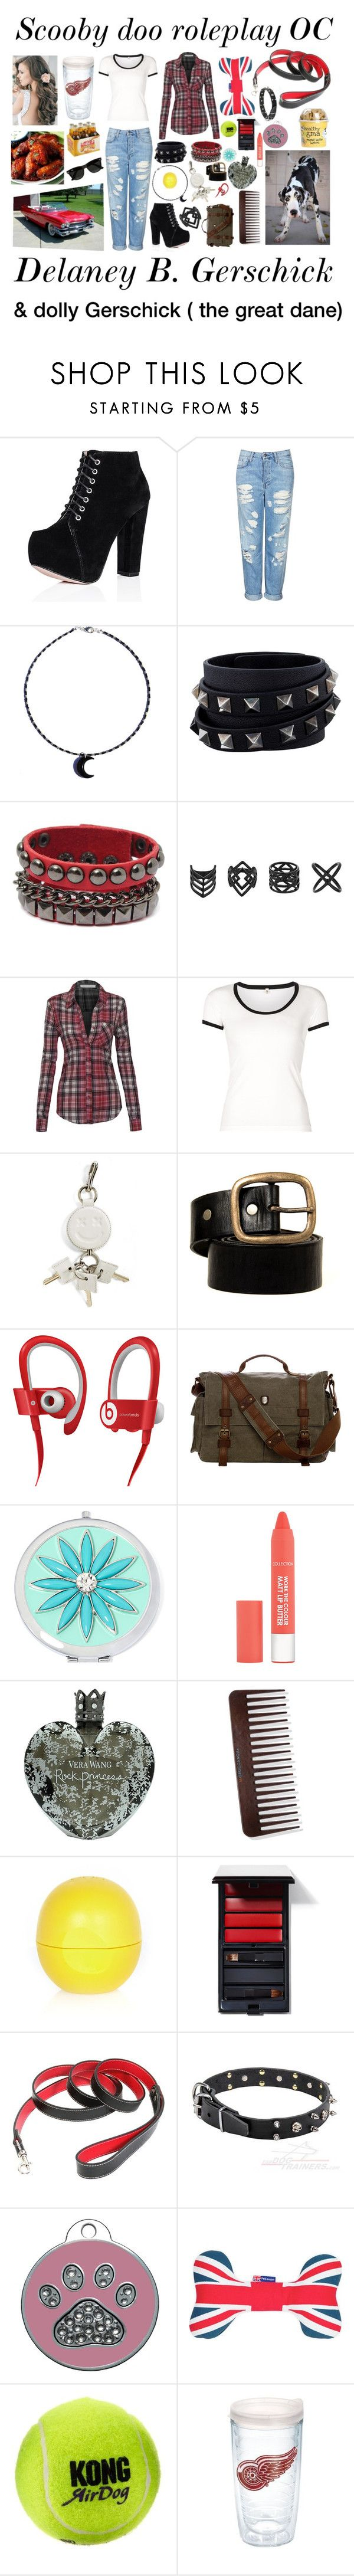 """""""Scooby doo rp OC!"""" by evil-fangirl-overlord ❤ liked on Polyvore featuring Topshop, Valentino, R13, Alexander Wang, Beats by Dr. Dre, Liz Claiborne, Vera Wang, River Island, Serge Lutens and Royce Leather"""